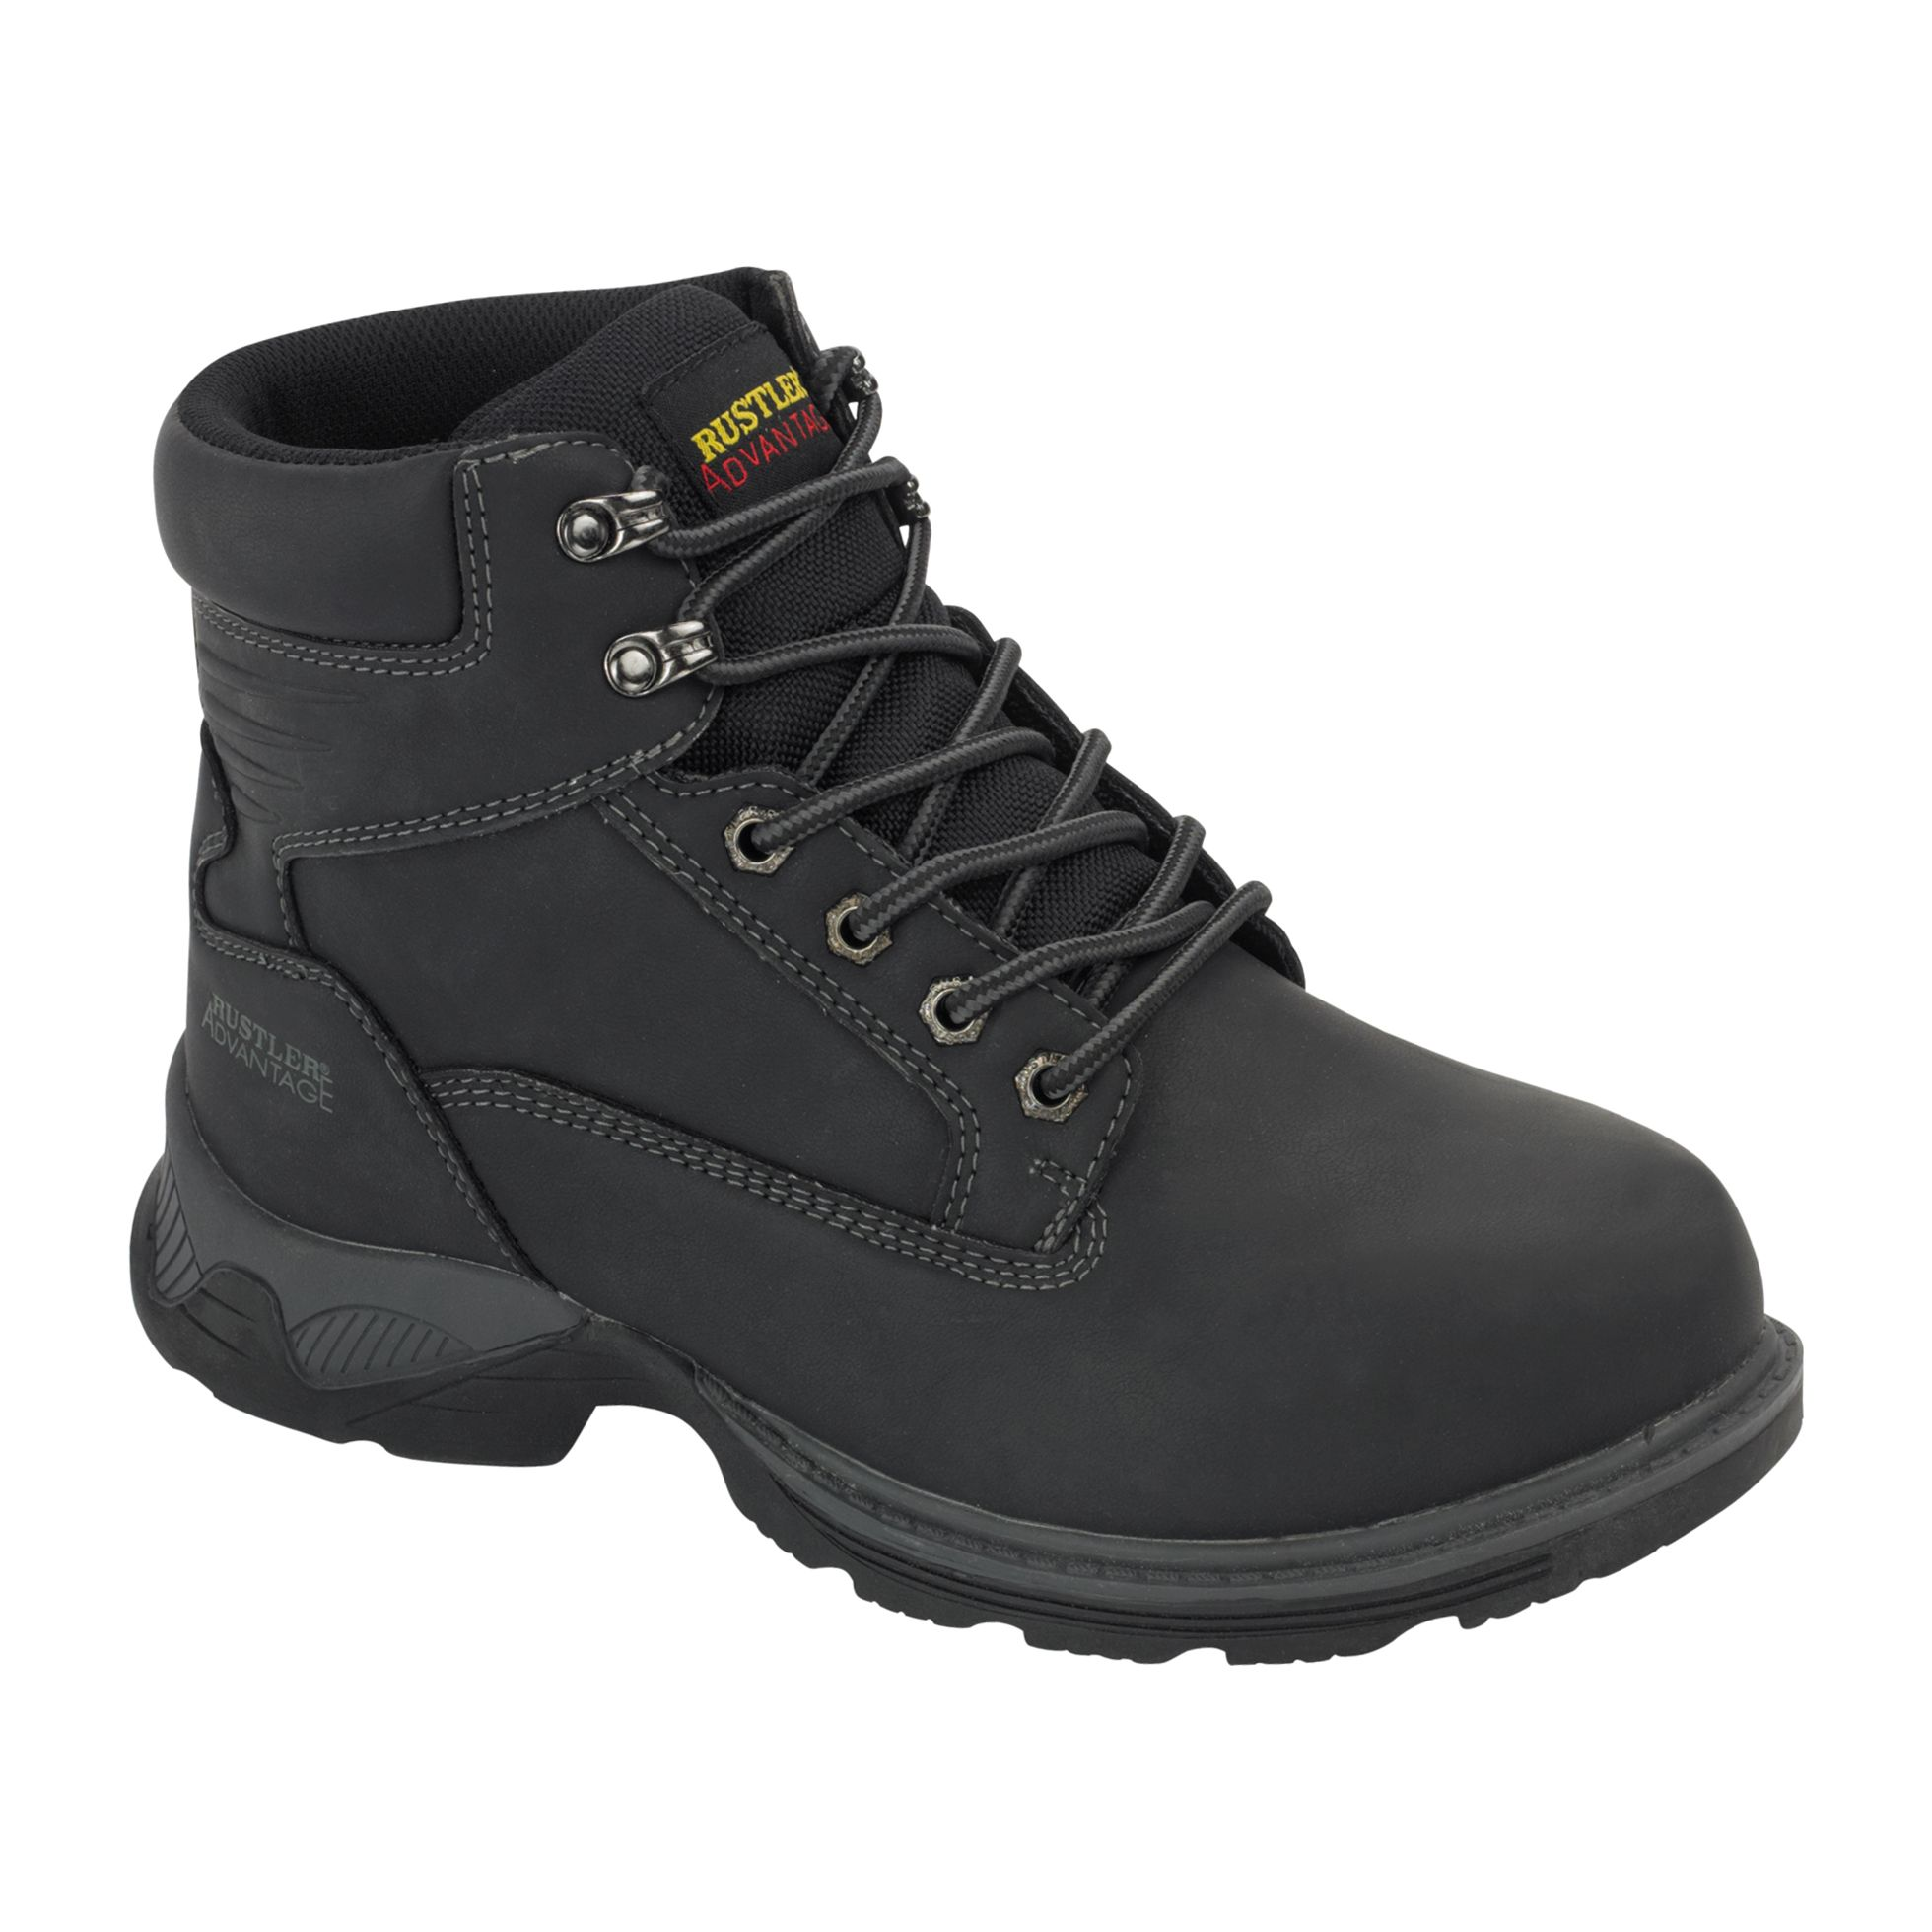 Men's Nock Work Boot Wide Width - Black